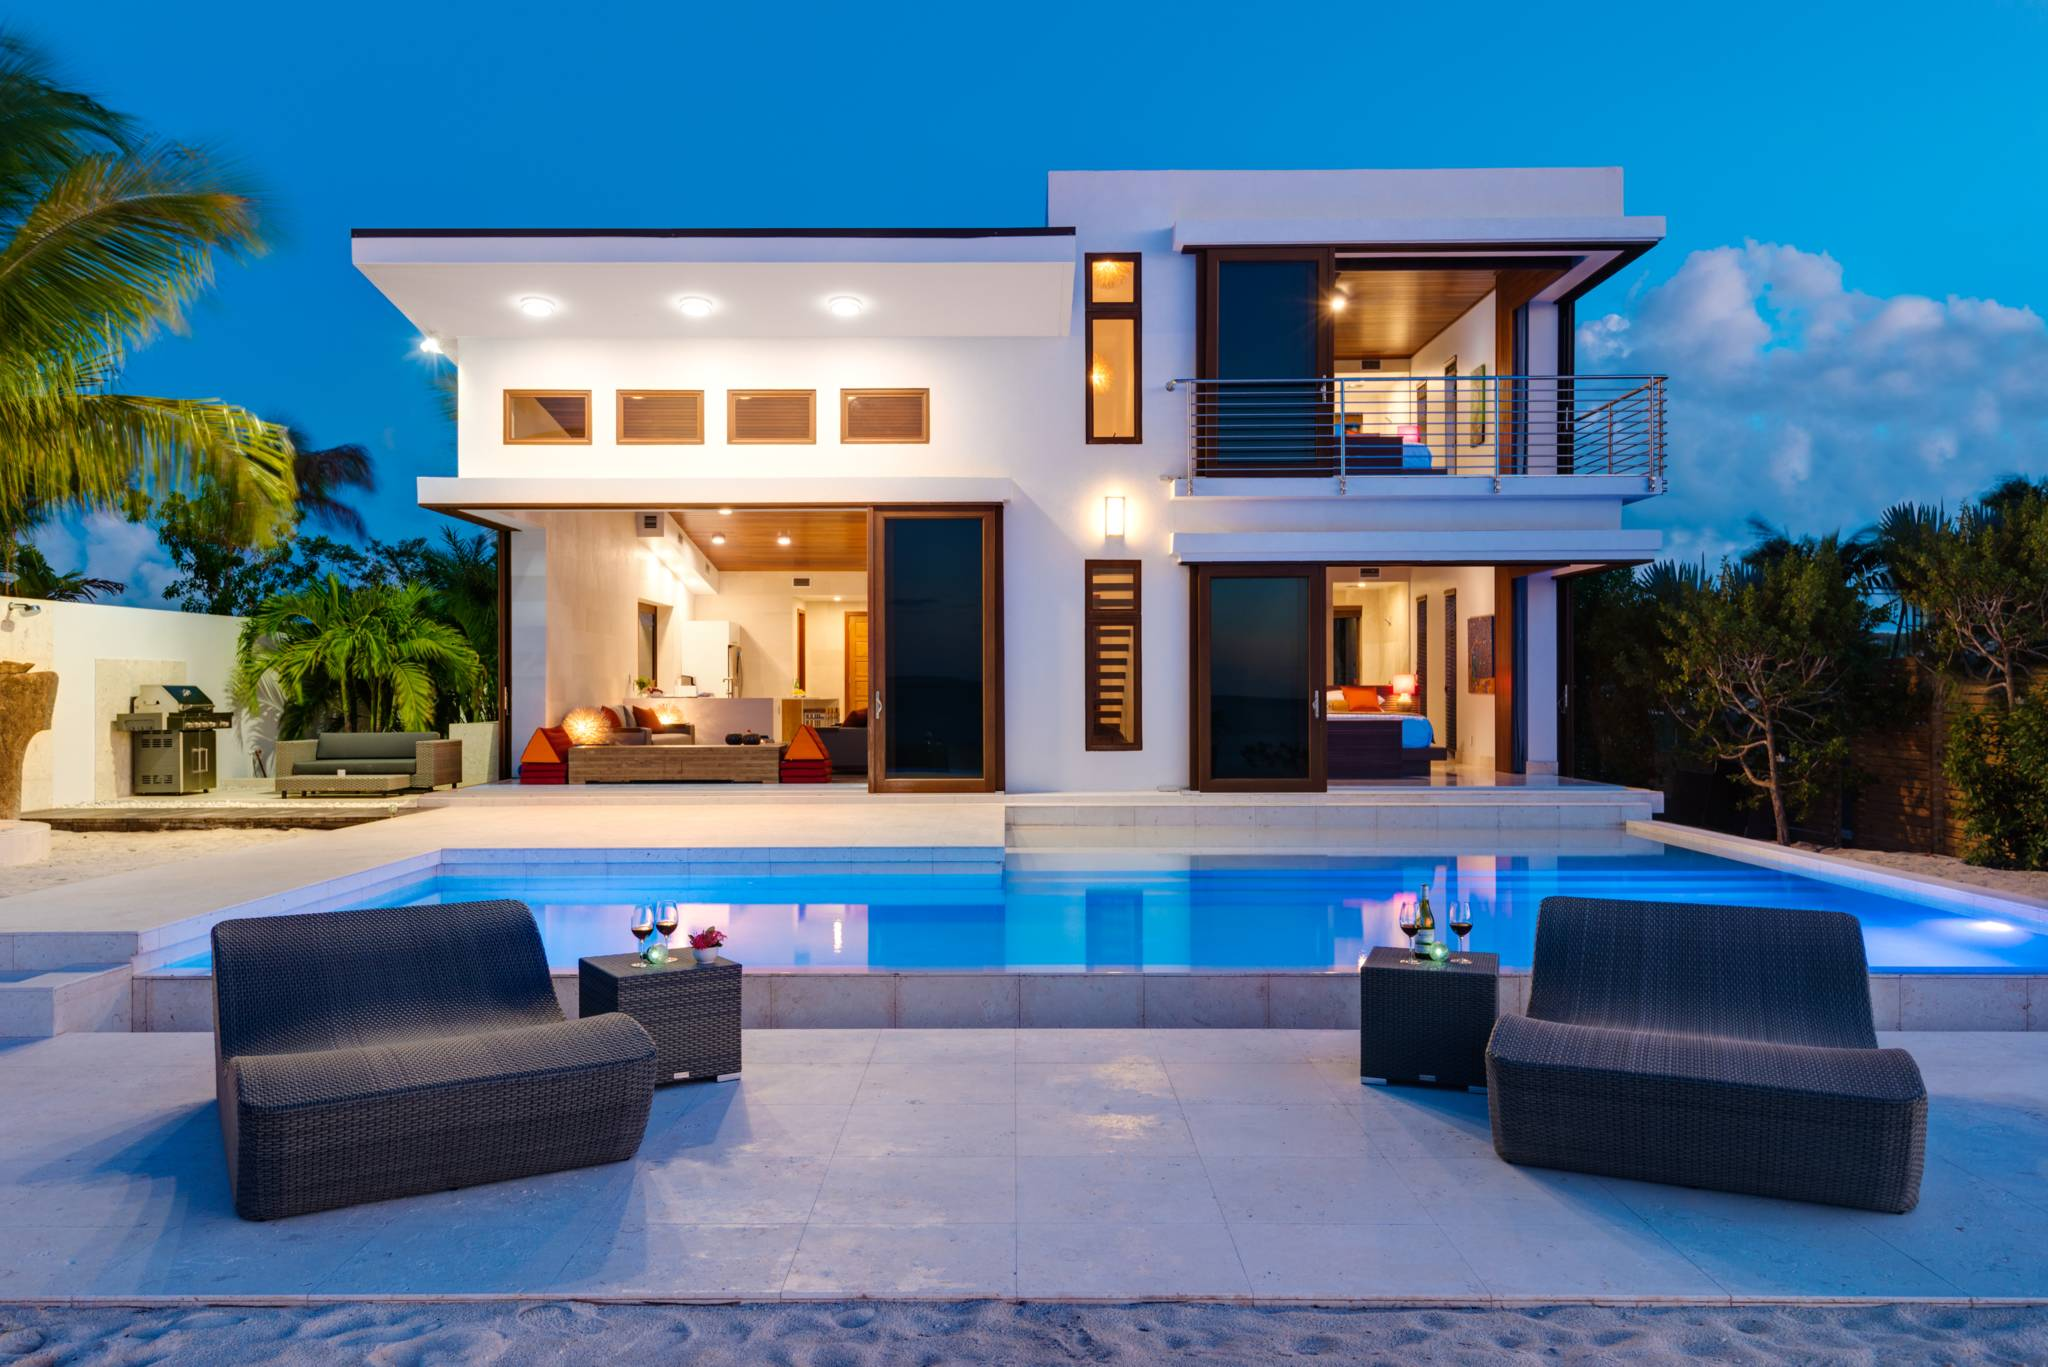 Night and pool lighting at Beach Kandi luxury vacation villa Turks and Caicos